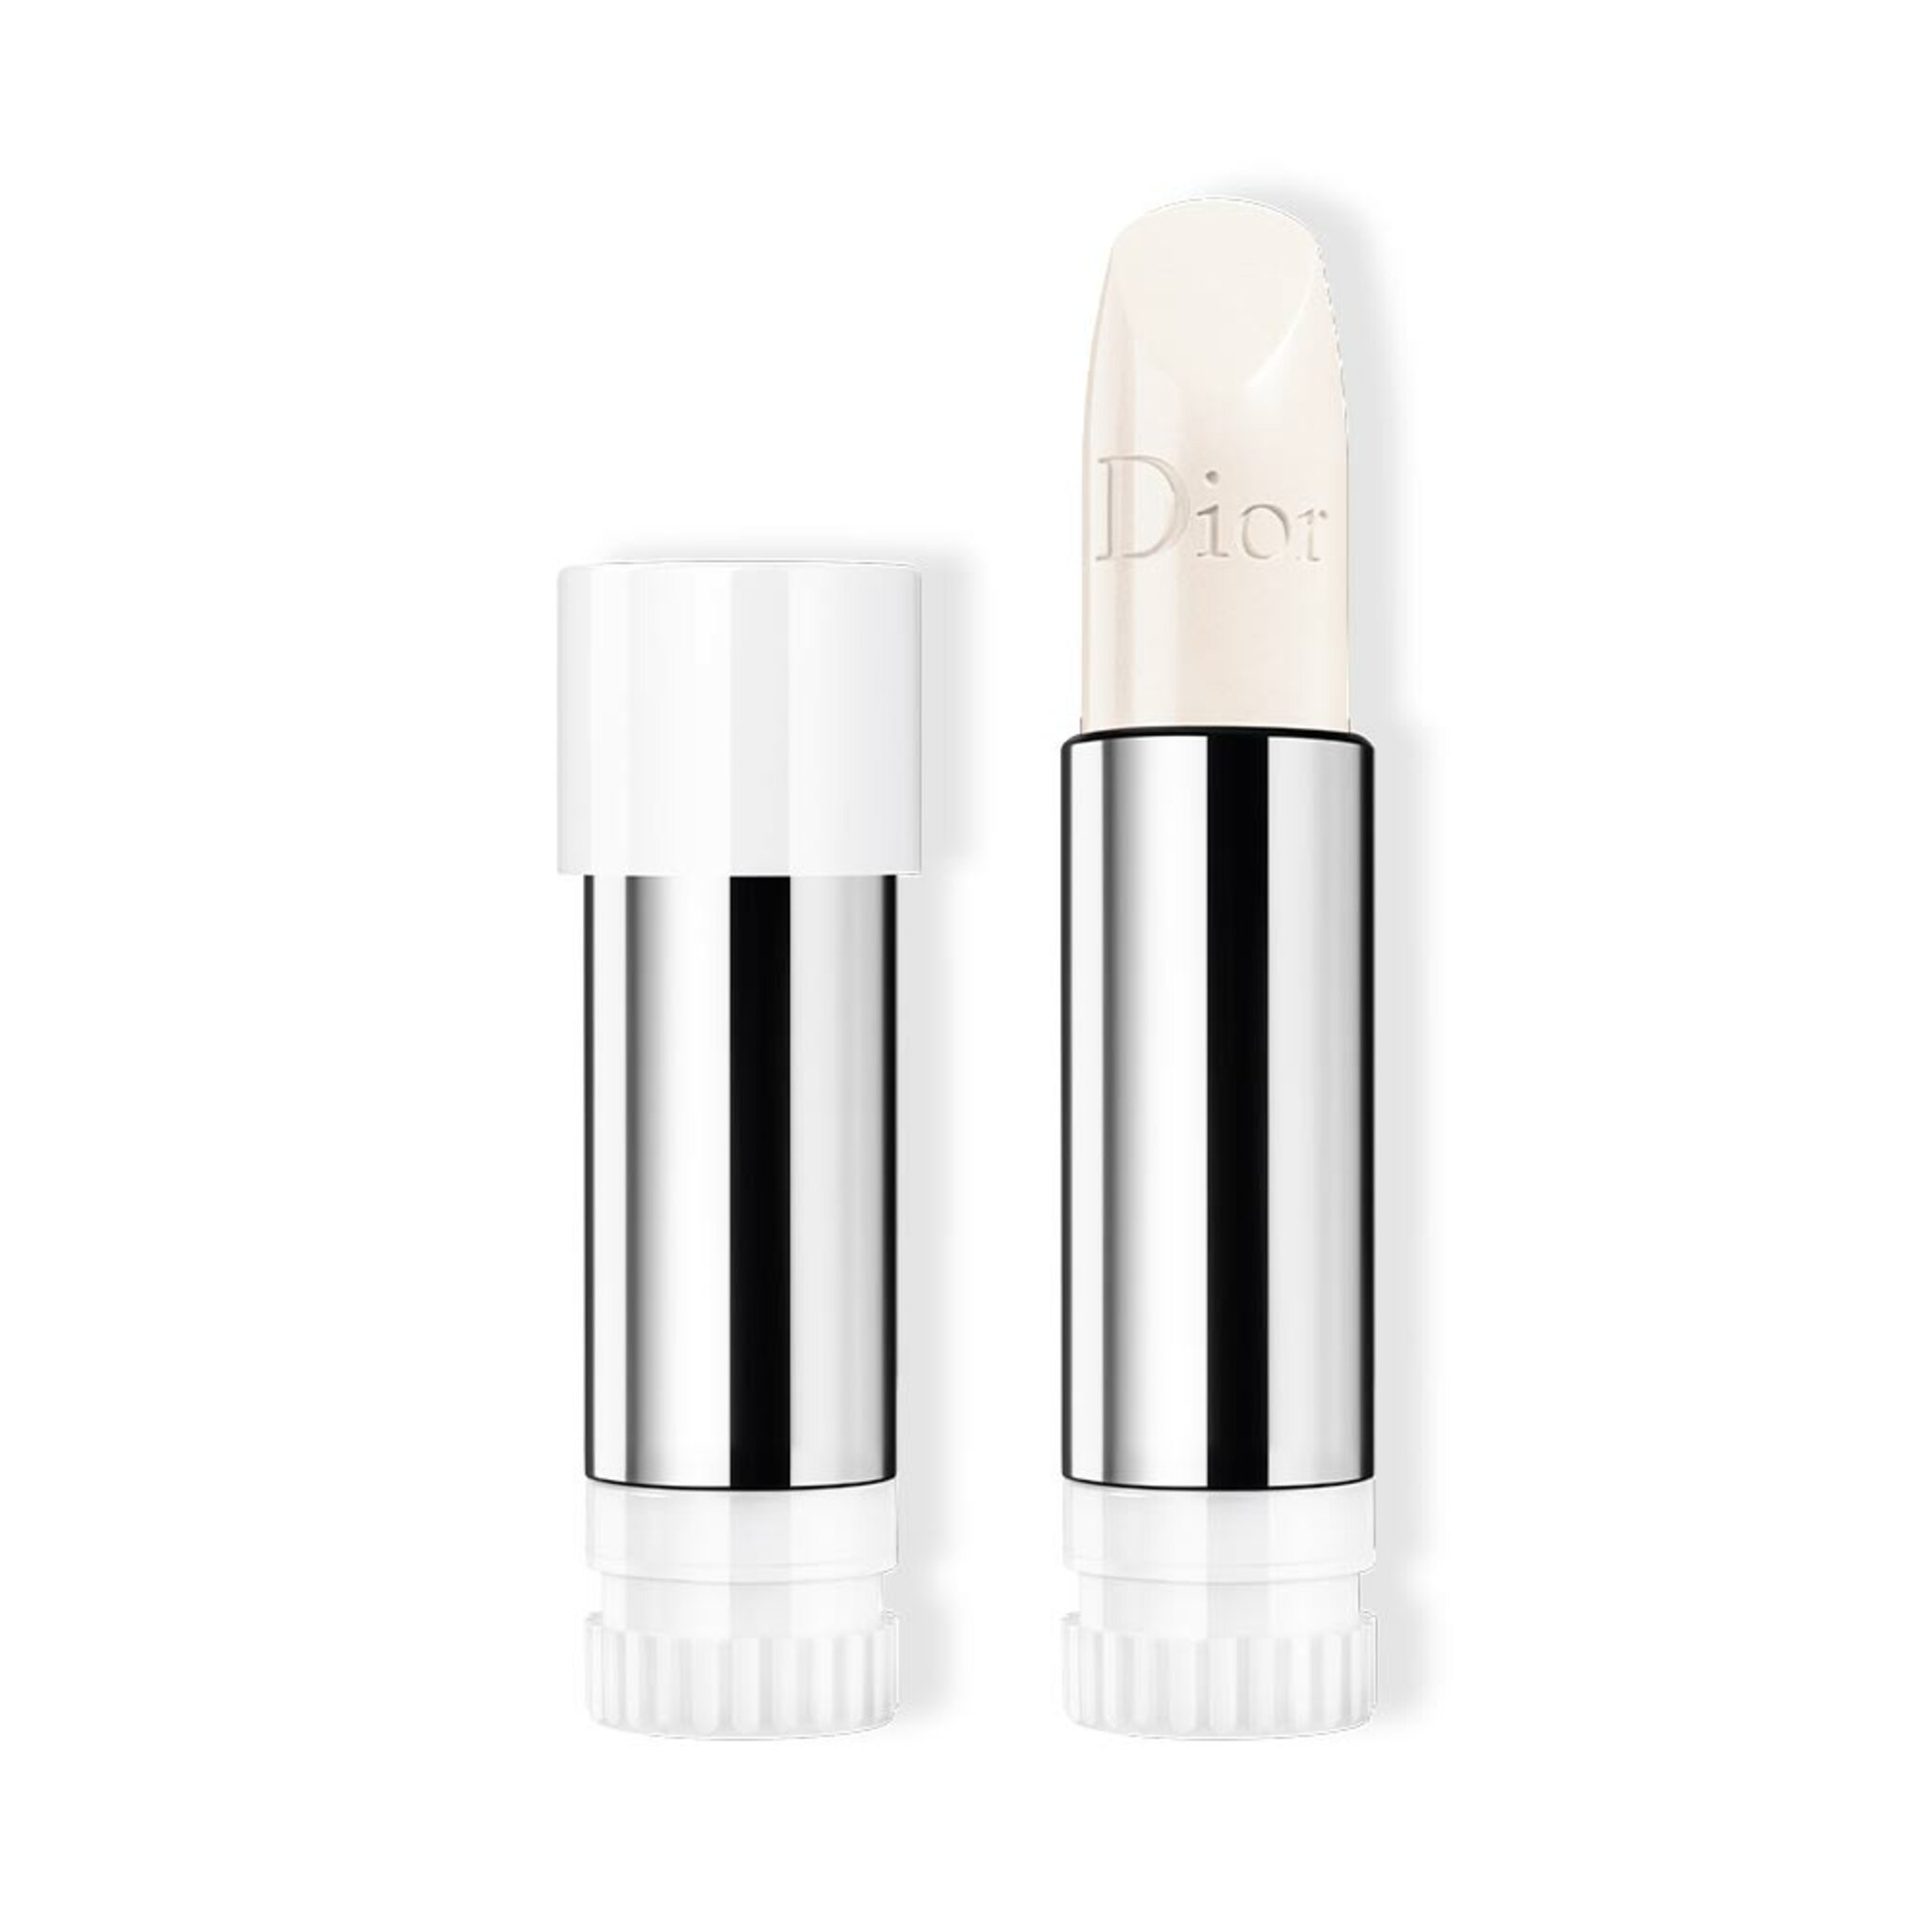 Rouge Dior Balm - The Refill, 3,5 G